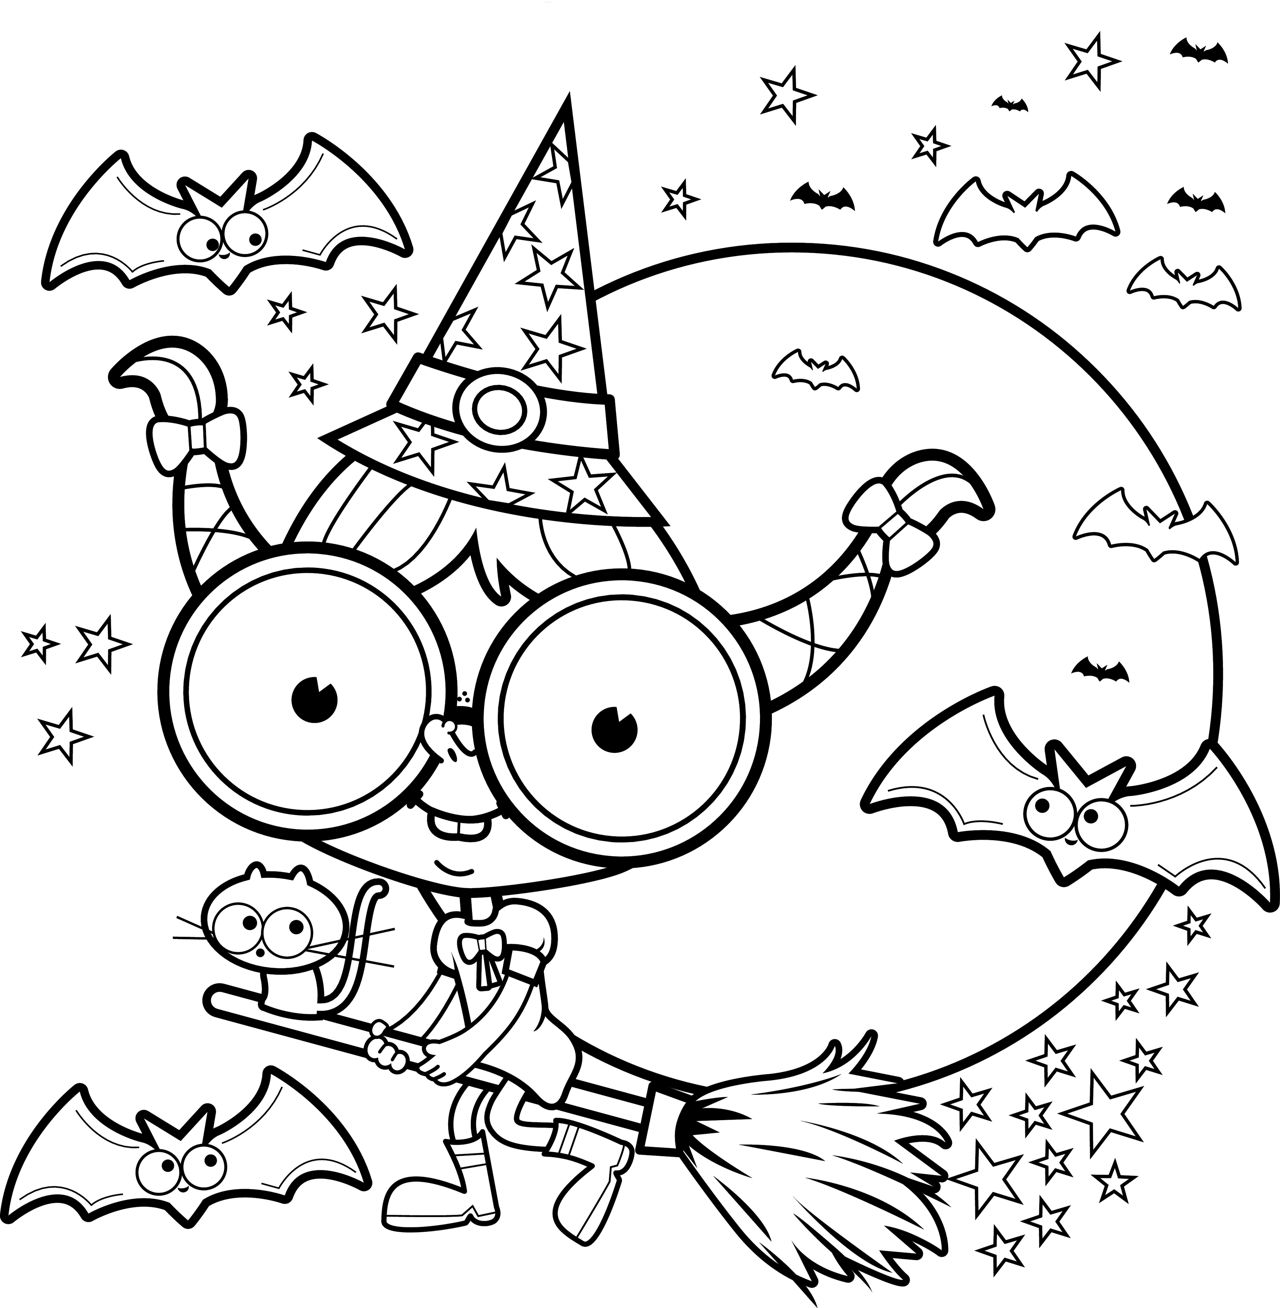 haloween coloring pages halloween coloring pages download free coloring sheets pages coloring haloween